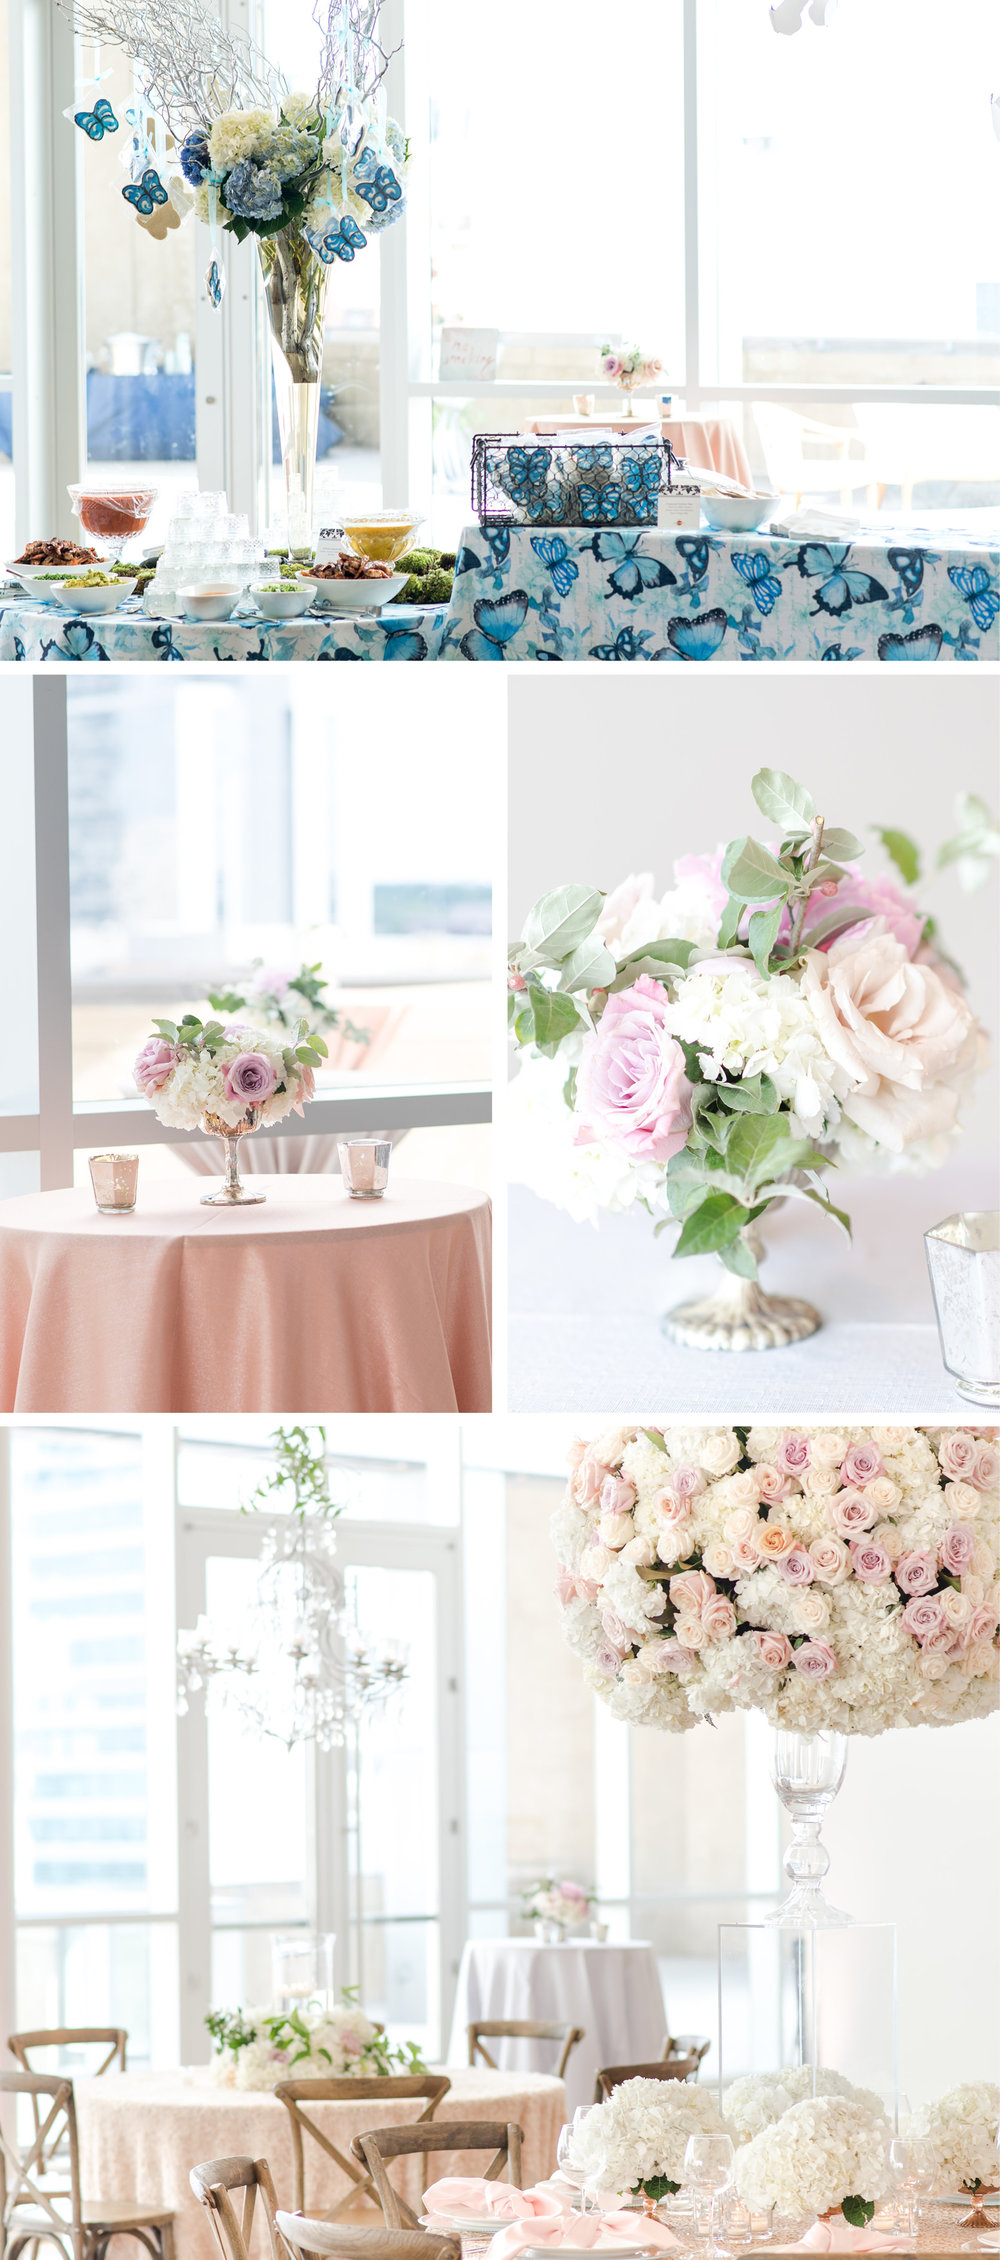 The-Knot-Pro-Charlotte-Mixer-Charlotte-Wedding-Professionals-Wedding-Stationer12.jpg